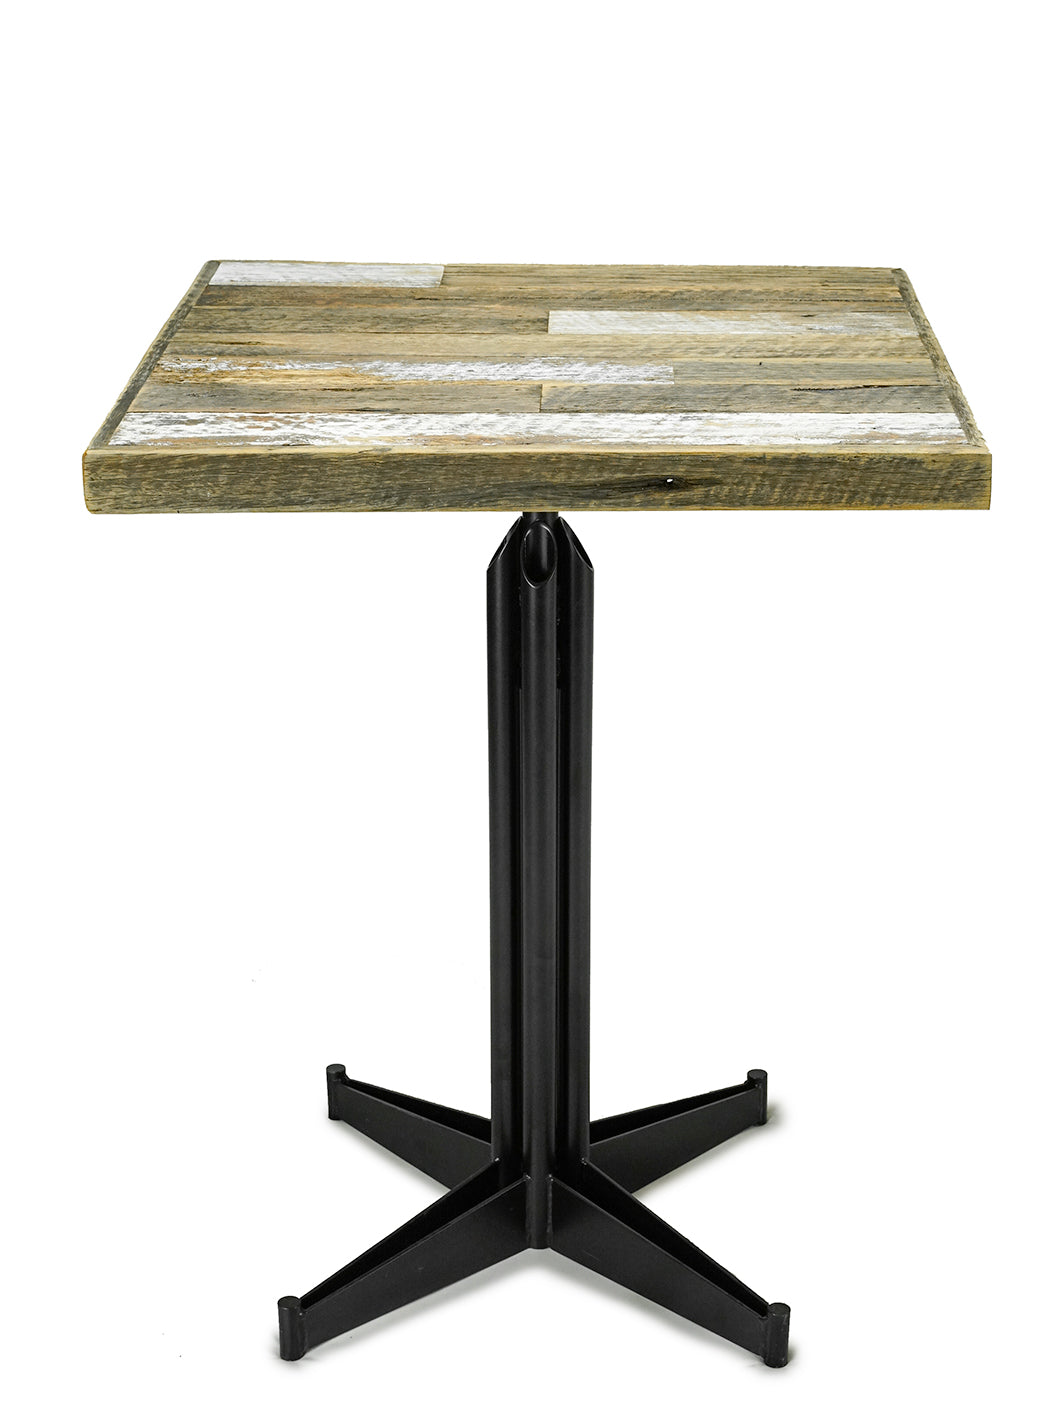 HARDWOOD Table Top - Industrial Finish - No Gap